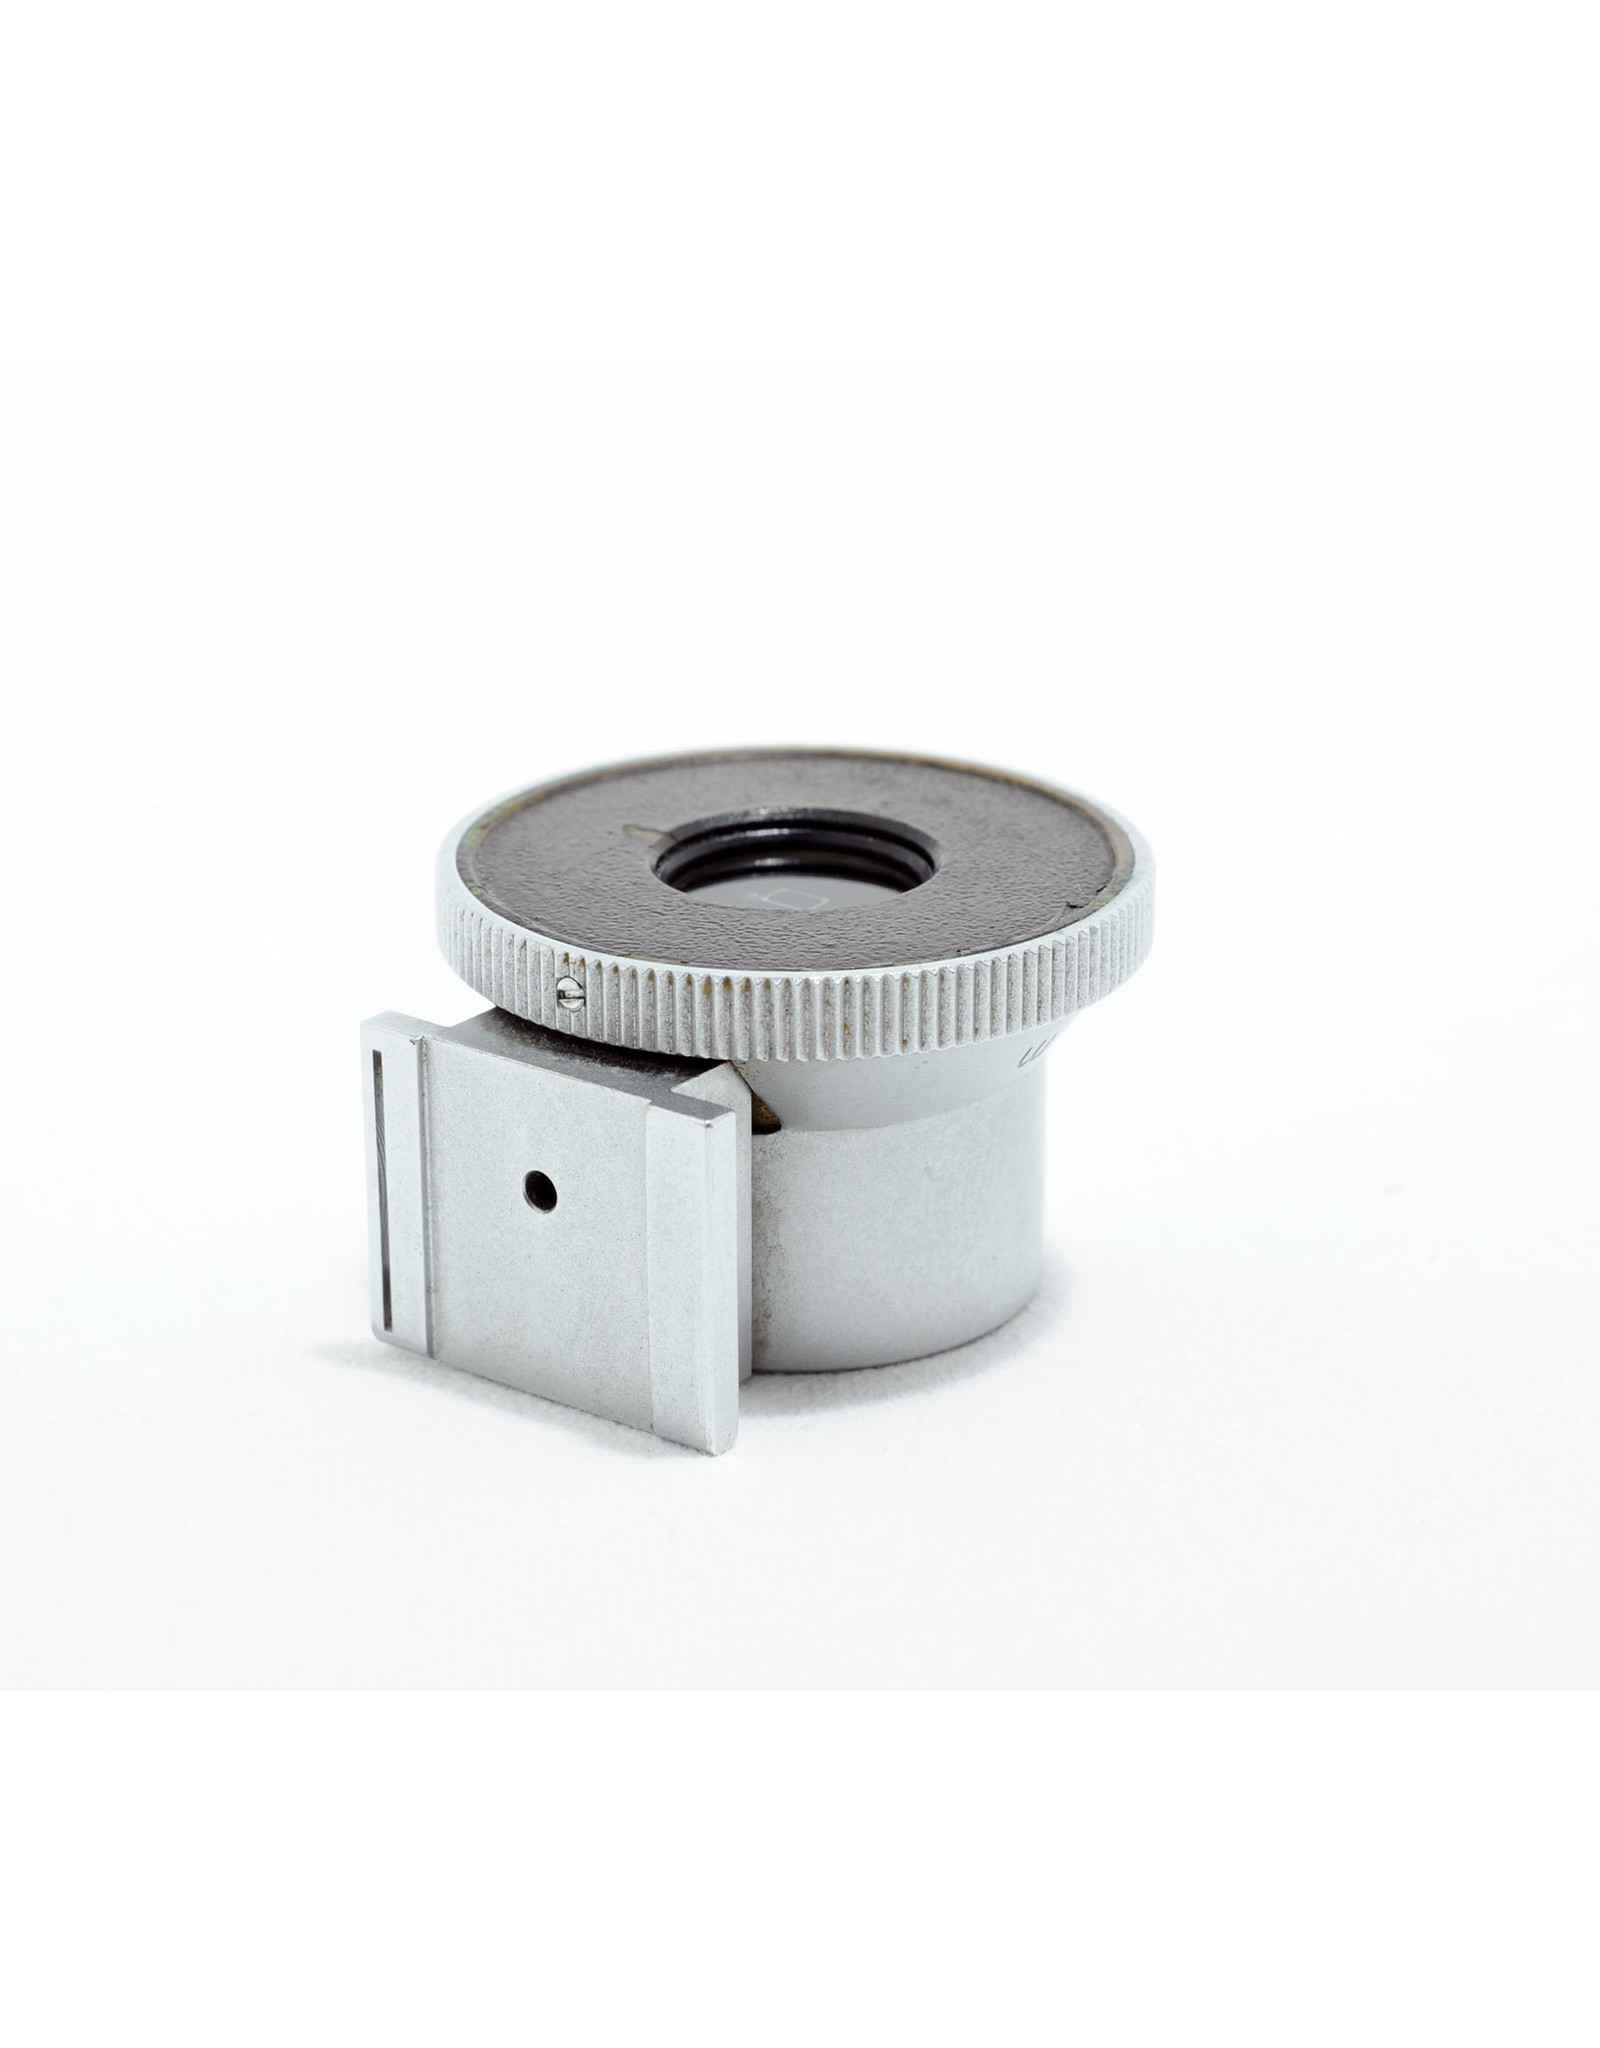 Leica Leica 13.5cm Bright Line Viewfinder ~ bright and clear optics